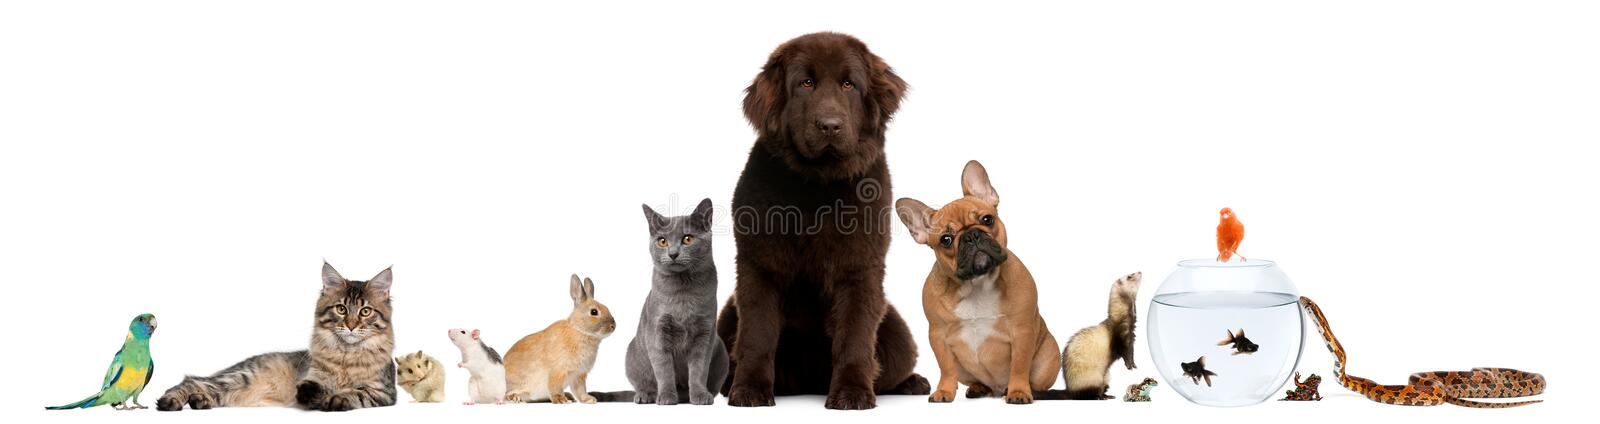 Group of pets sitting in front of white background royalty free stock photography